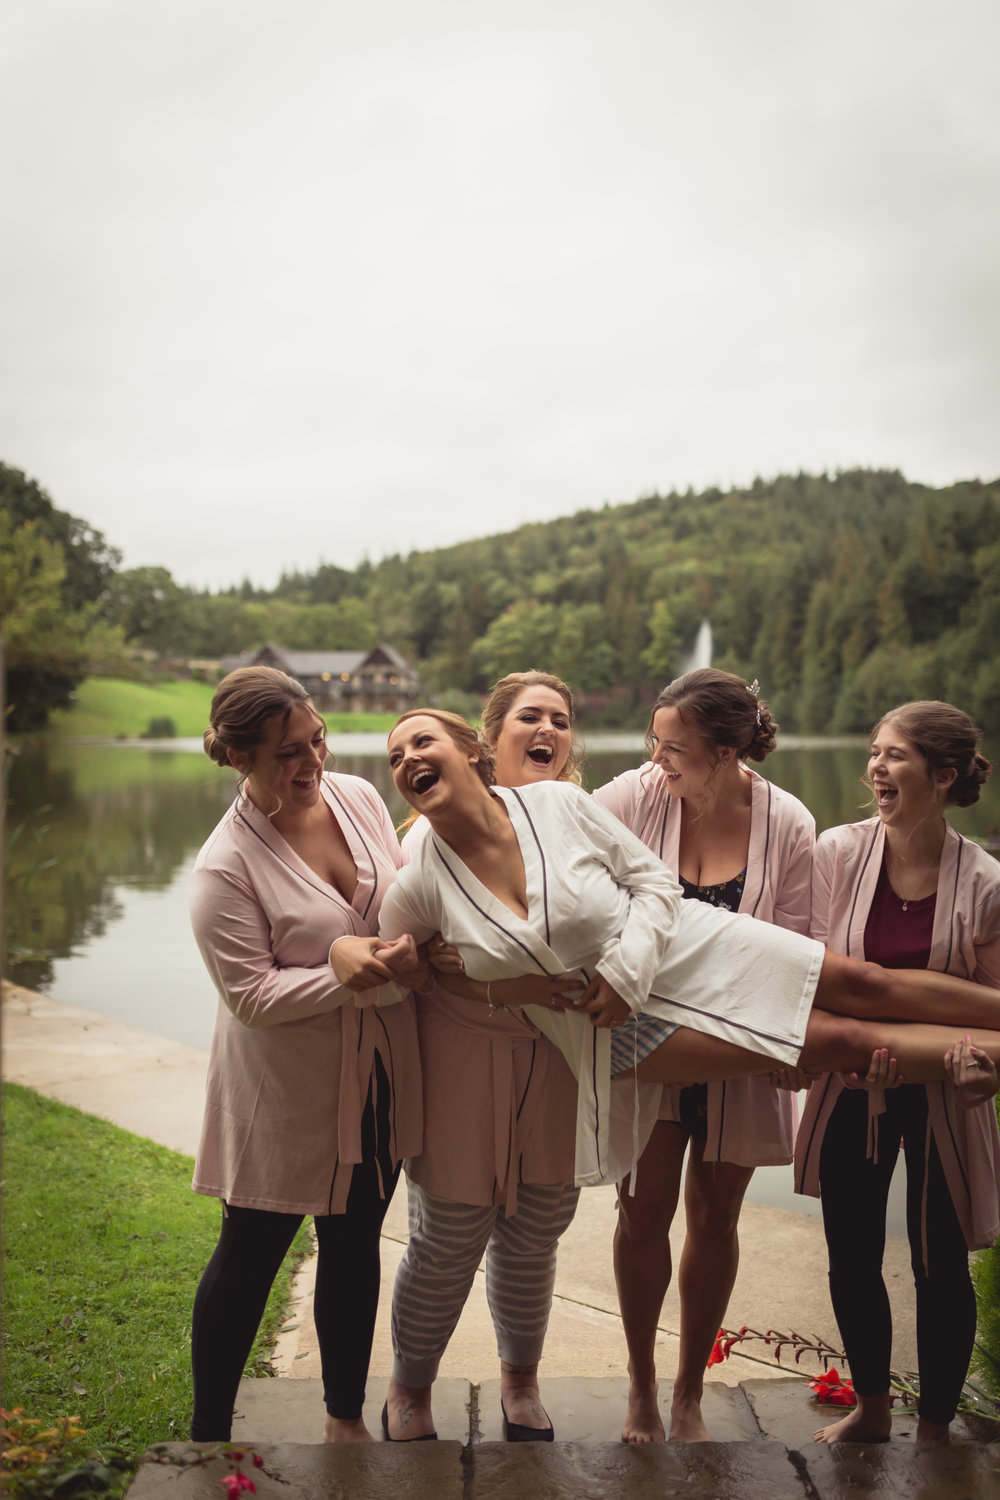 Bridesmaids carrying bride and laughing out loud next to a lake